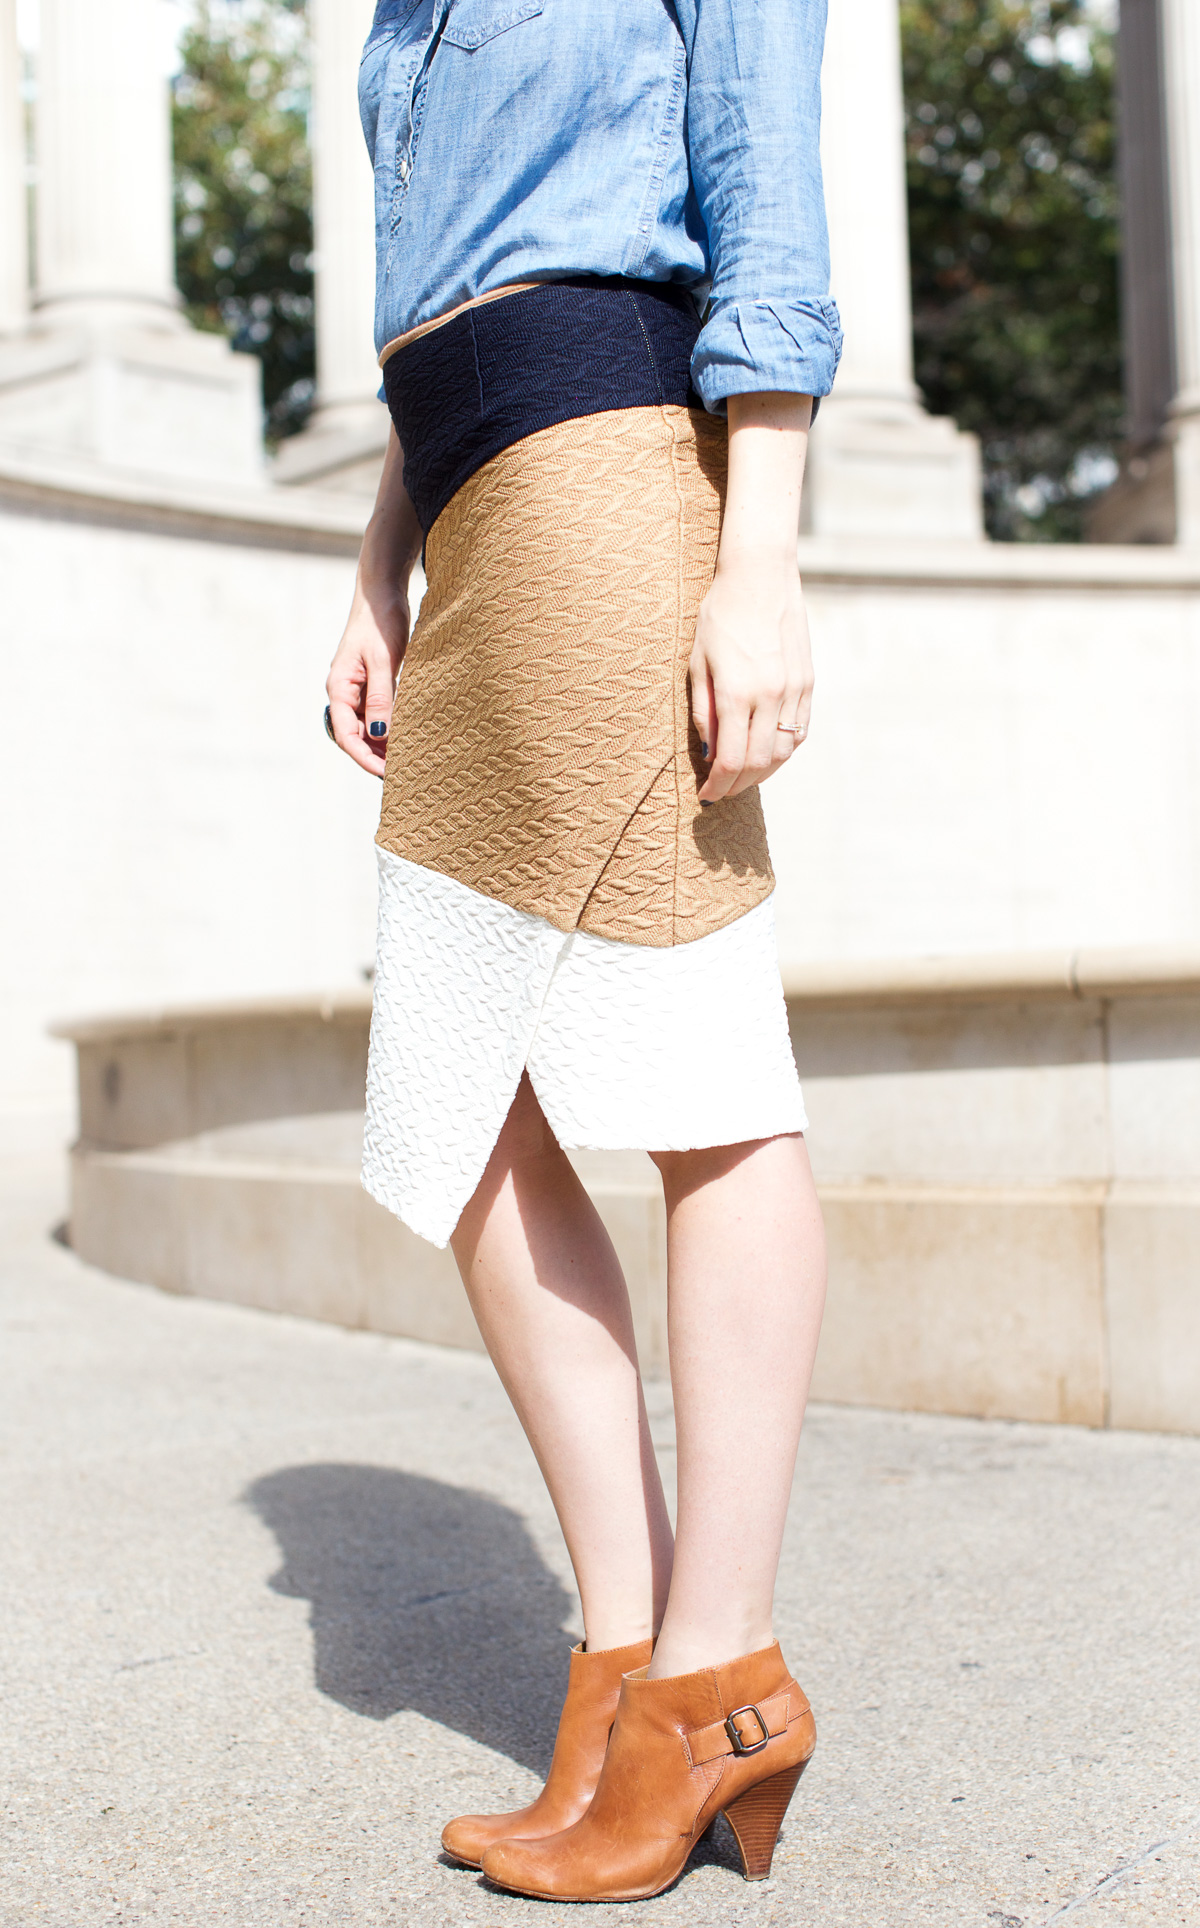 Anthropologie skirt_Top US Fashion Bloggers_Chicago Fashion Bloggers_How to style chambray-4